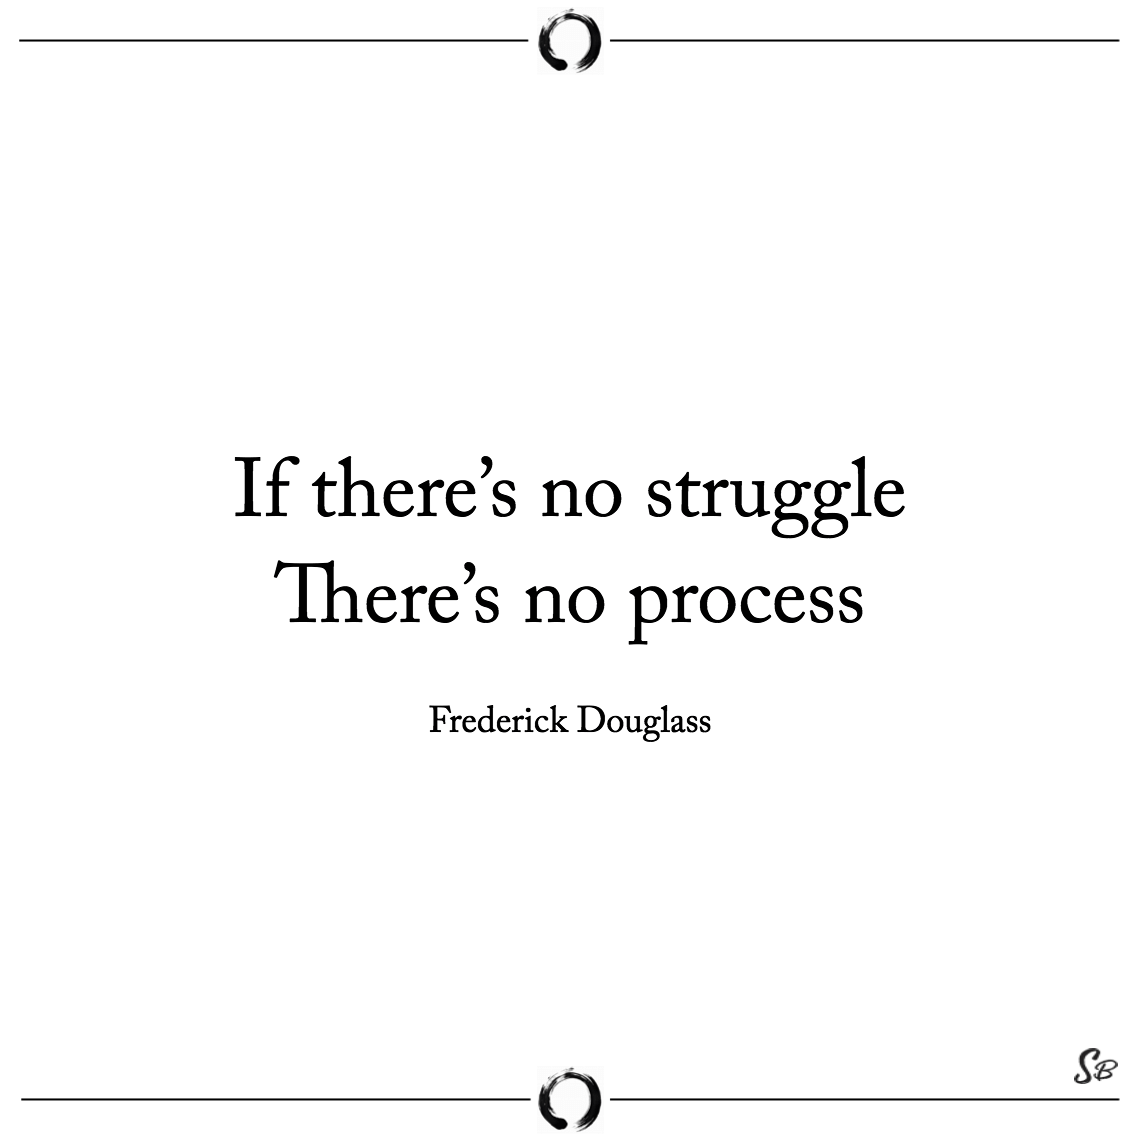 If there's no struggle there's no process frederick douglass